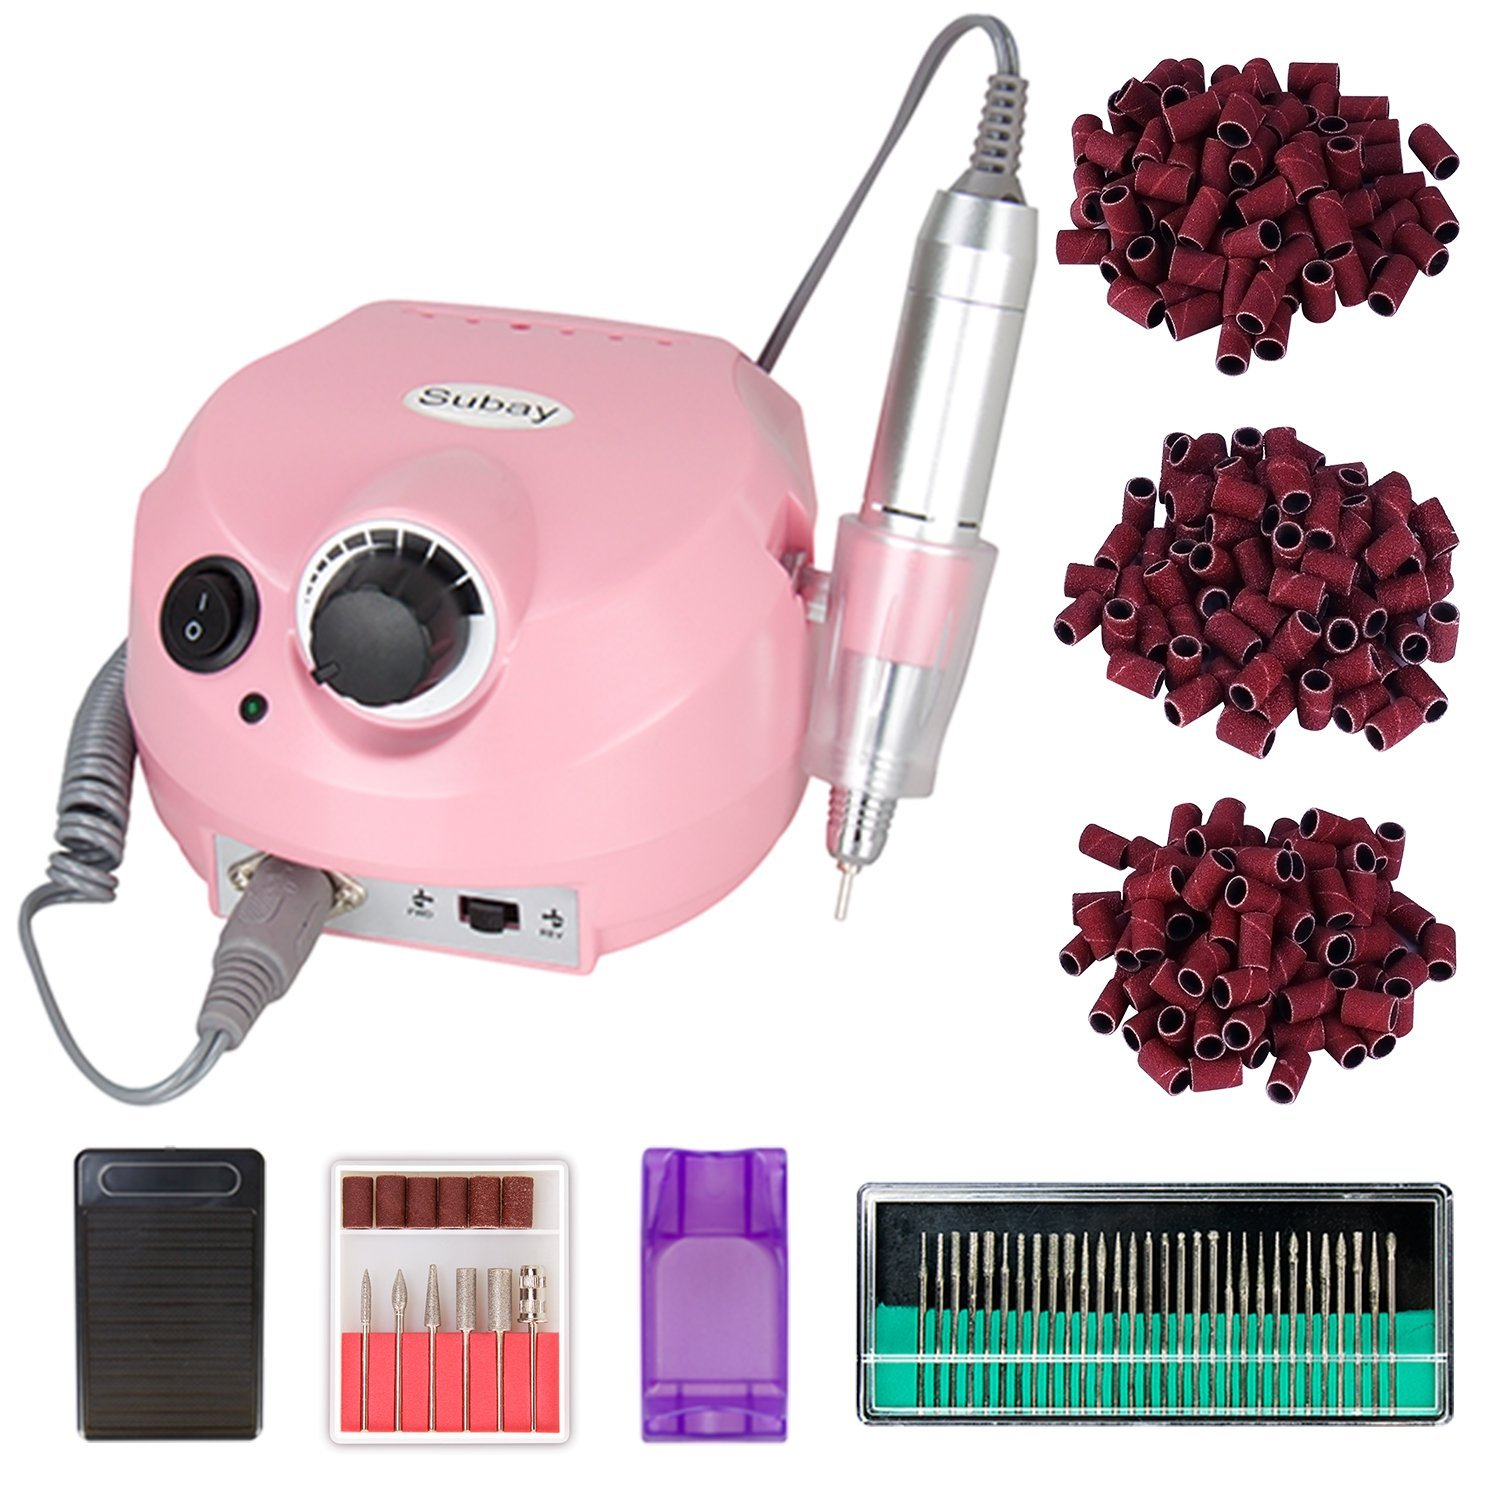 30000rpm Pro Electric Nail Drill Machine Pedicure Manicure Kits File Drill Bits Sanding Band Accessory Nail Salon Nail Art Tools (Pink) Subay